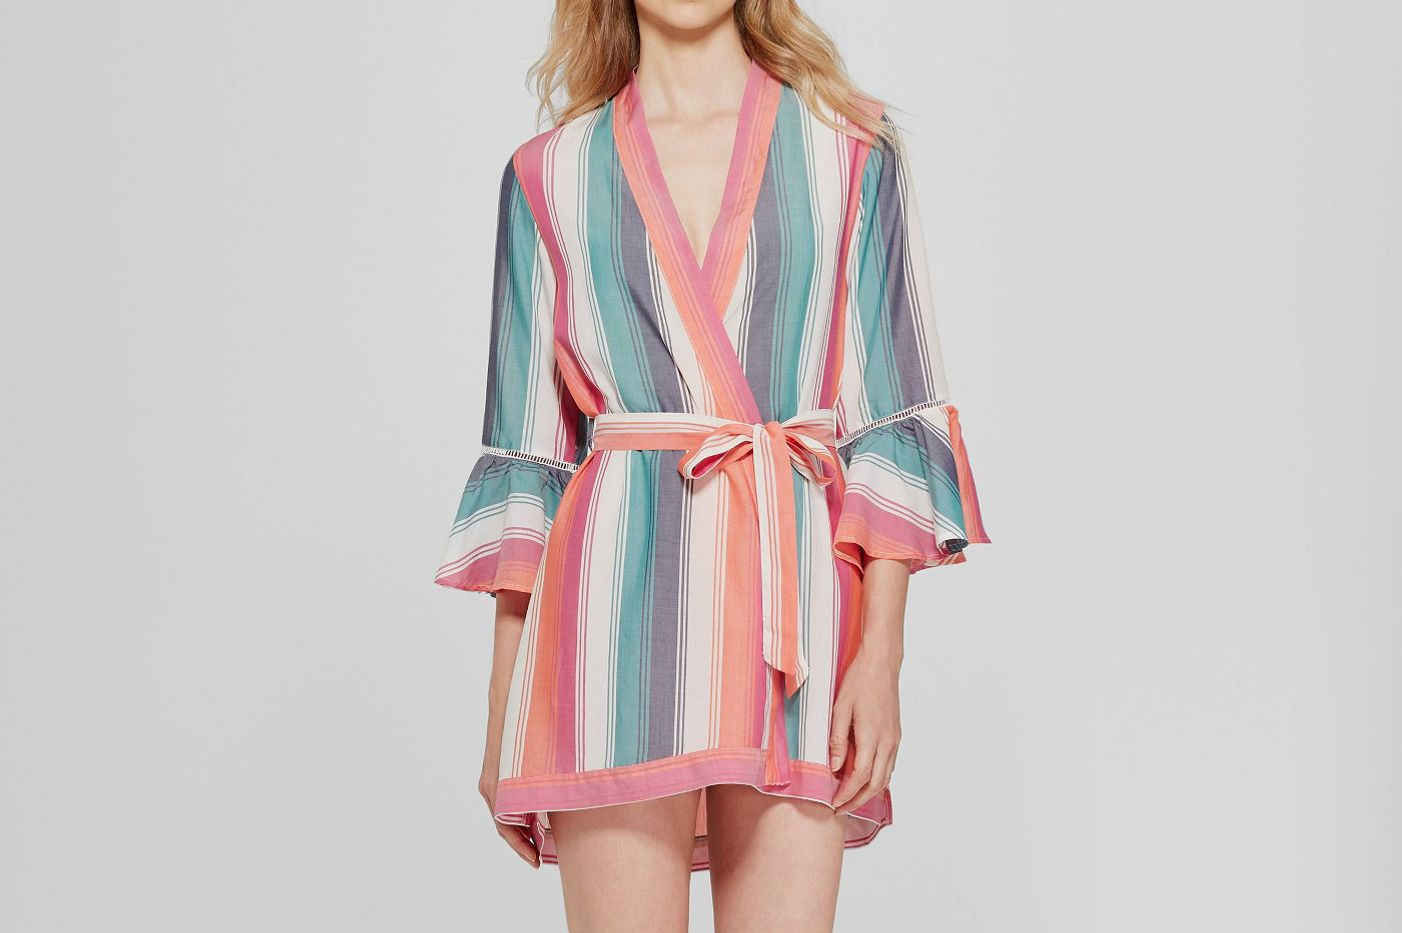 Gilligan & O'Malley Tencel Robe